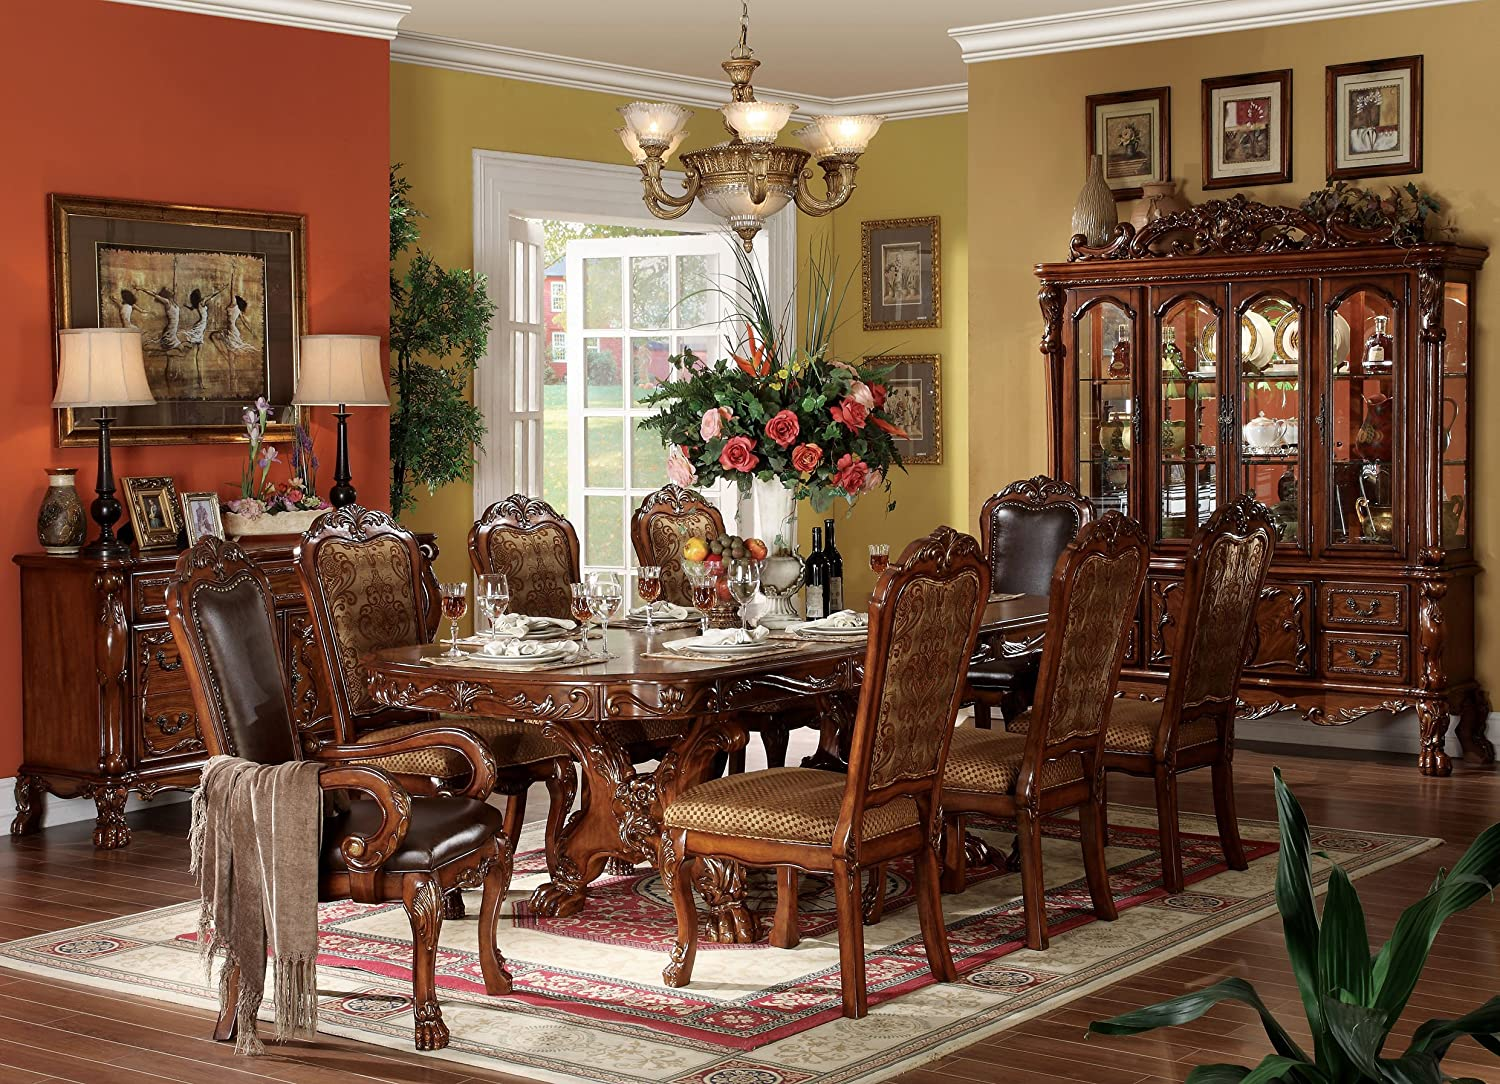 traditional dining room set. Amazon com  ACME Dresden Cherry Oak Dining Table with Double Pedestals Tables